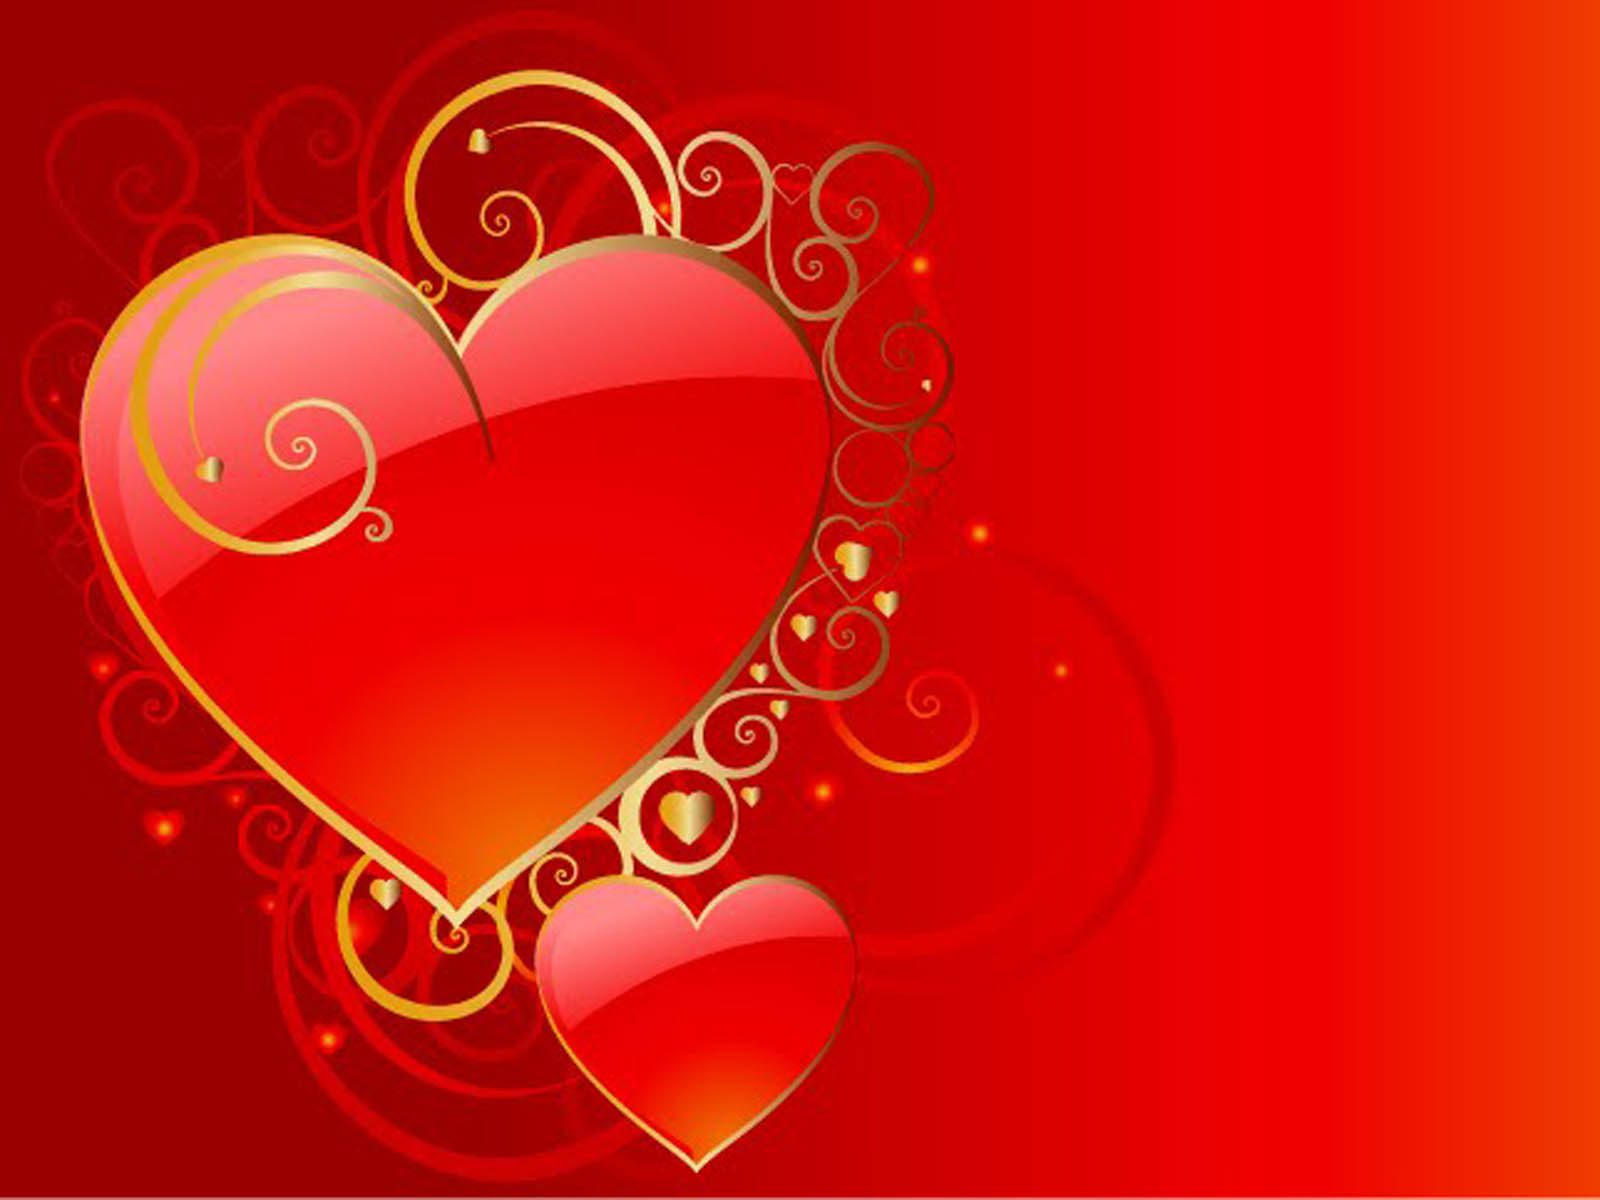 Love Wallpaper In Name : wallpapers: Love Heart Wallpapers